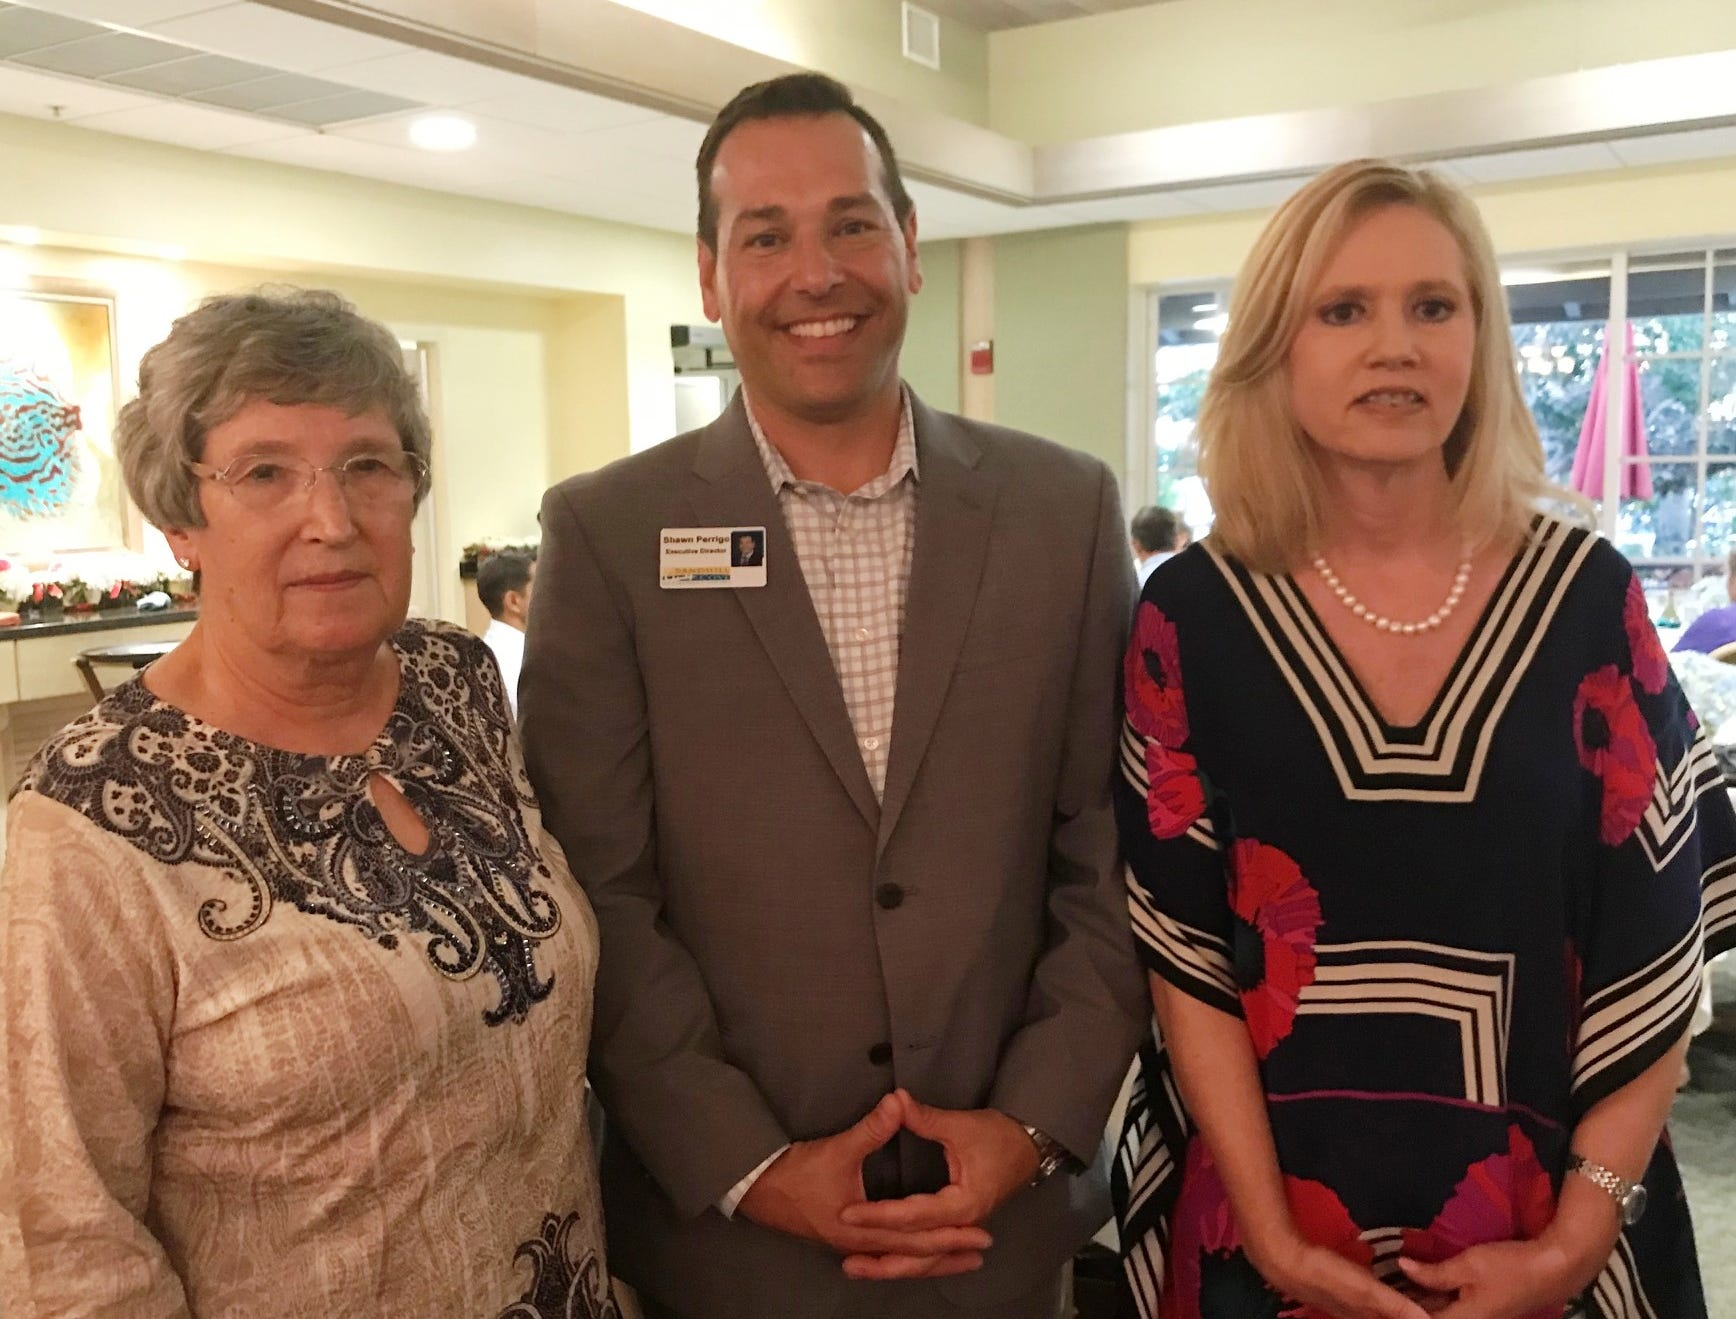 Garden Club of Stuart President Sandy Decker, left, with Shawn Perrigo, Sandhill Cove Retirement Living executive director and Jill Burton, Sandhill Cove marketing director, at the Kick-off Gala for Garden Club of Stuart's Secret Gardens Tour.